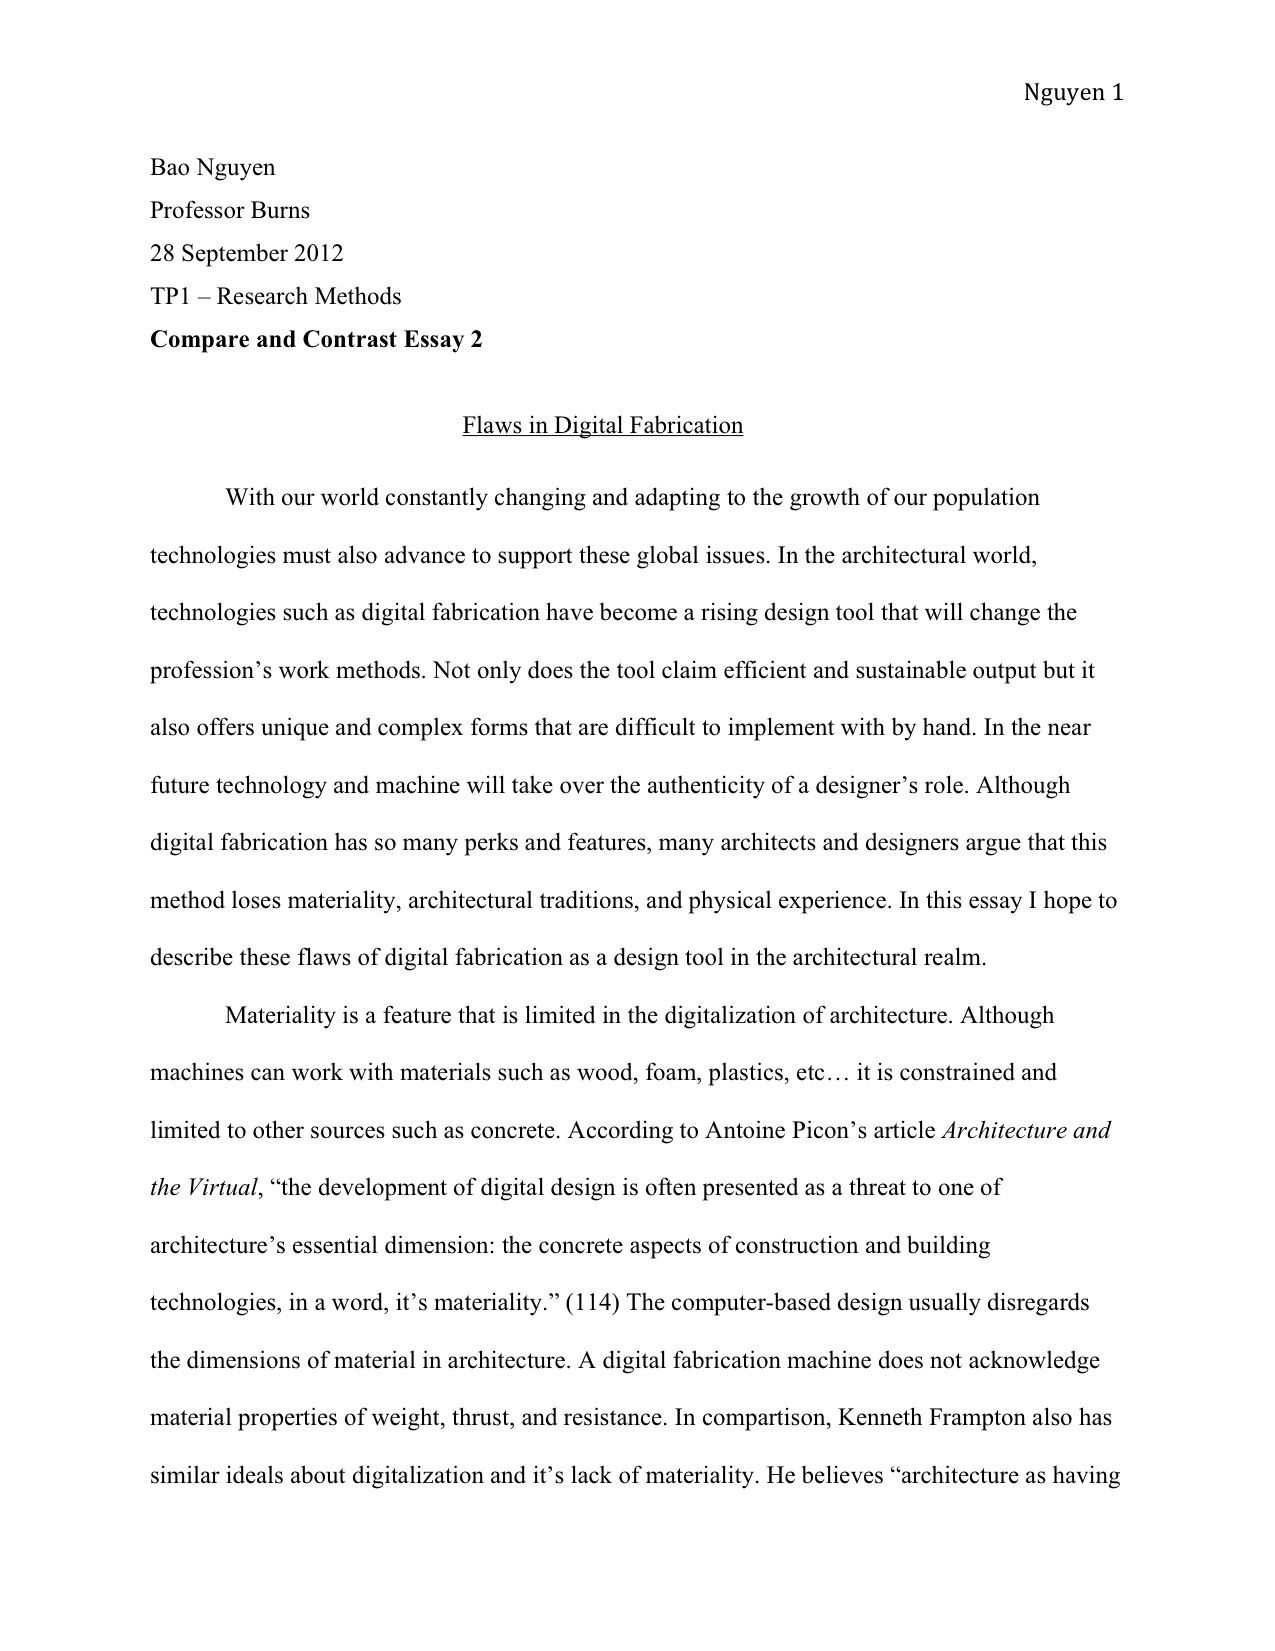 002 Essay Example Movie Review Name Examples Refrence Mulan Disney Princess Aesthetics Basics How To Write Film Paper For College Analysis Stirring A Samples Full